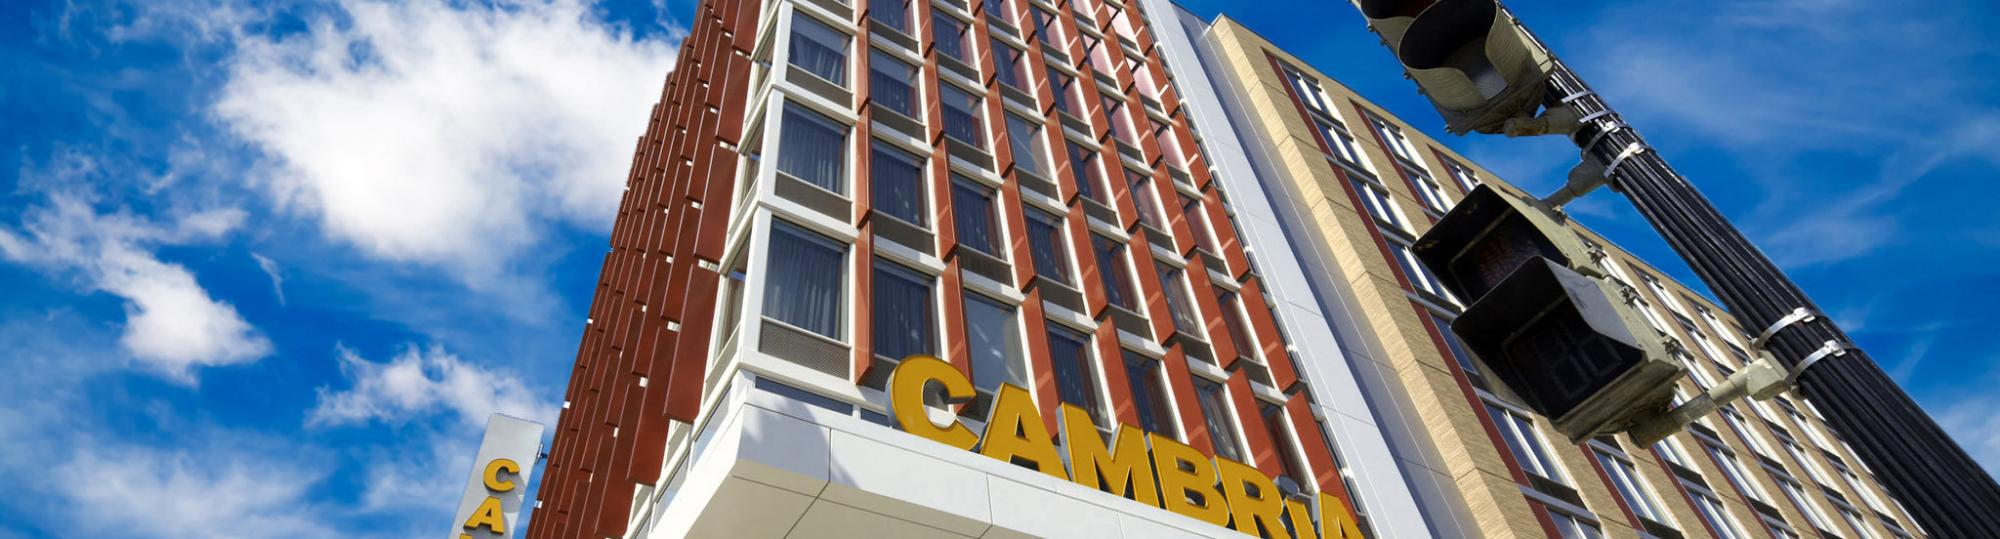 Cambria Suites Military Discount with Veterans Advantage